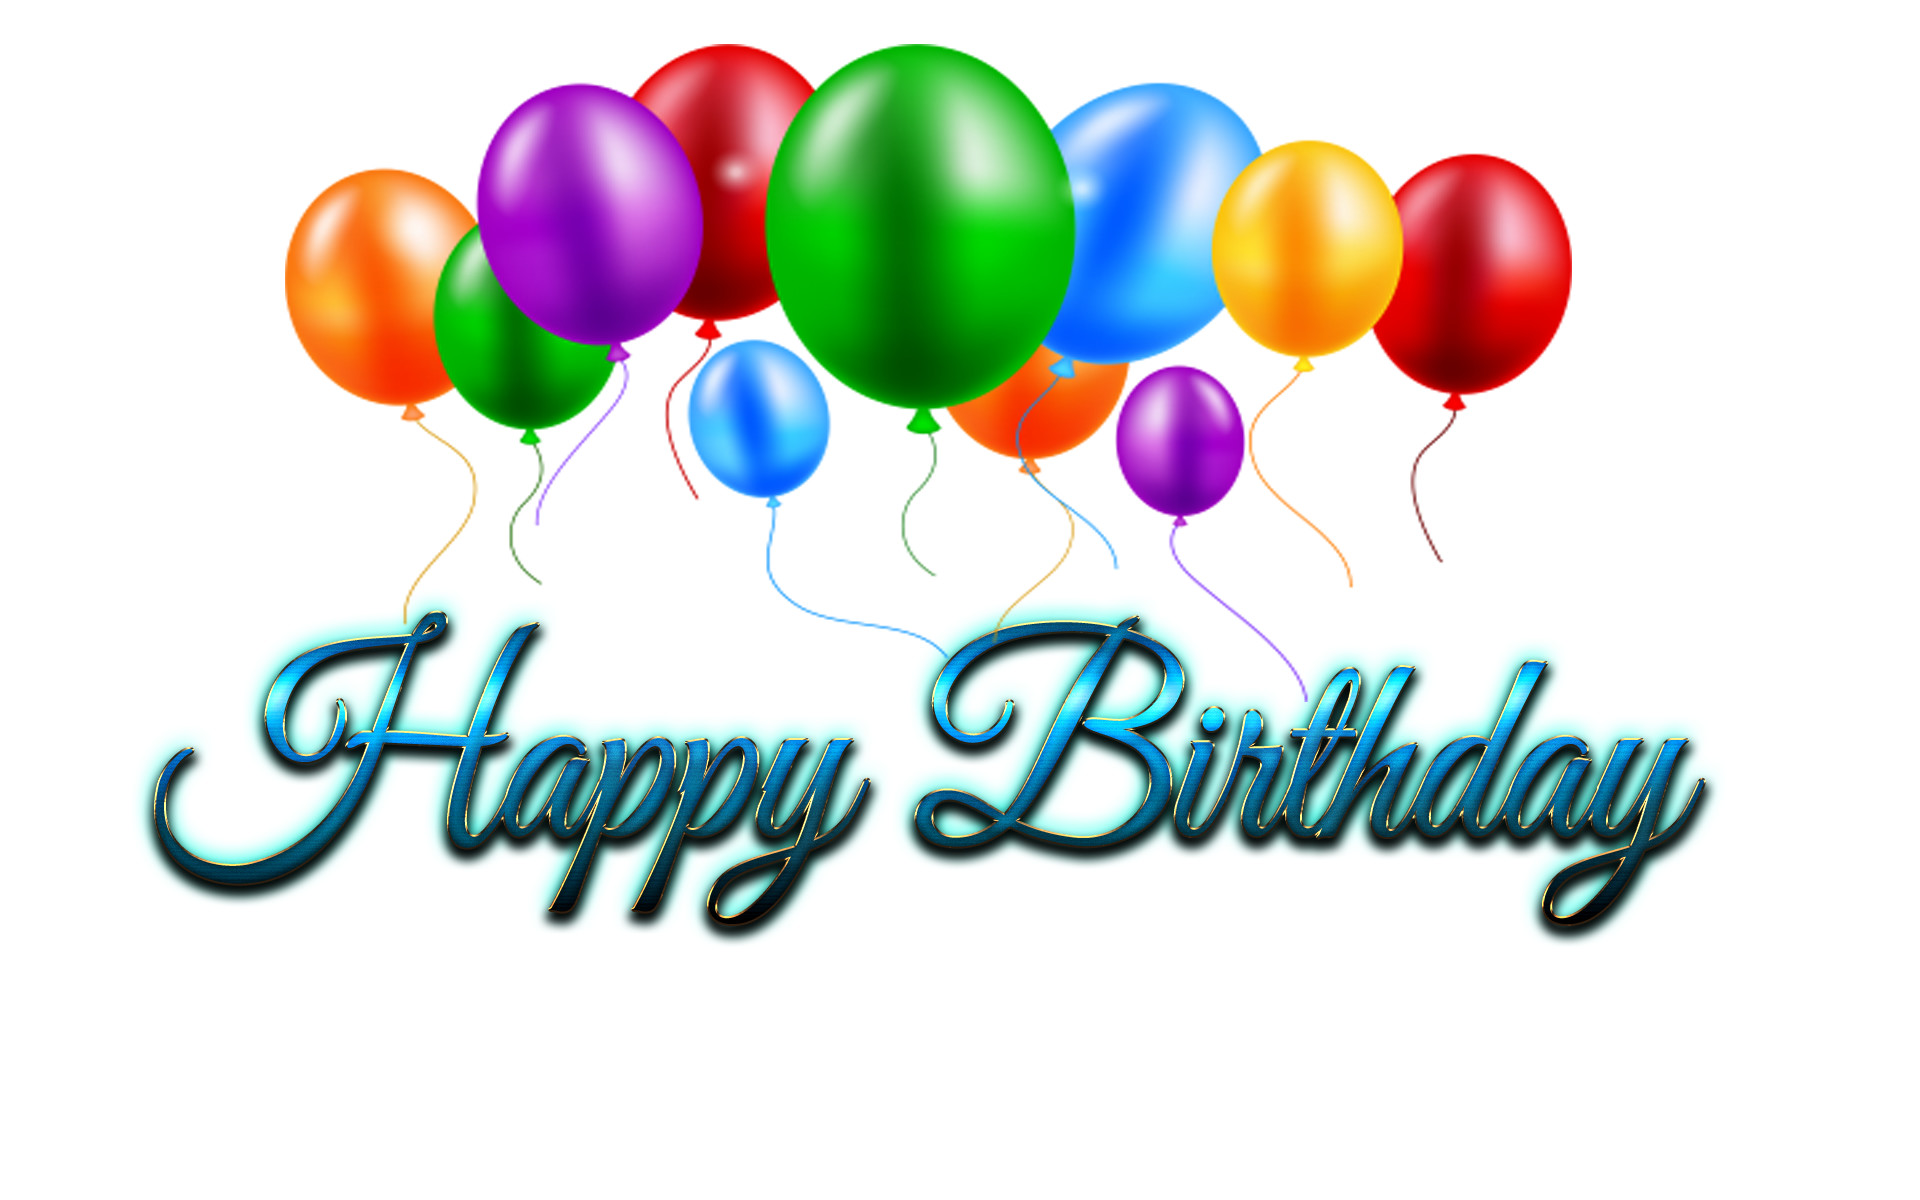 Happy birthday wallpapers with name 52 background pictures - Happy birthday wallpaper hd with name ...